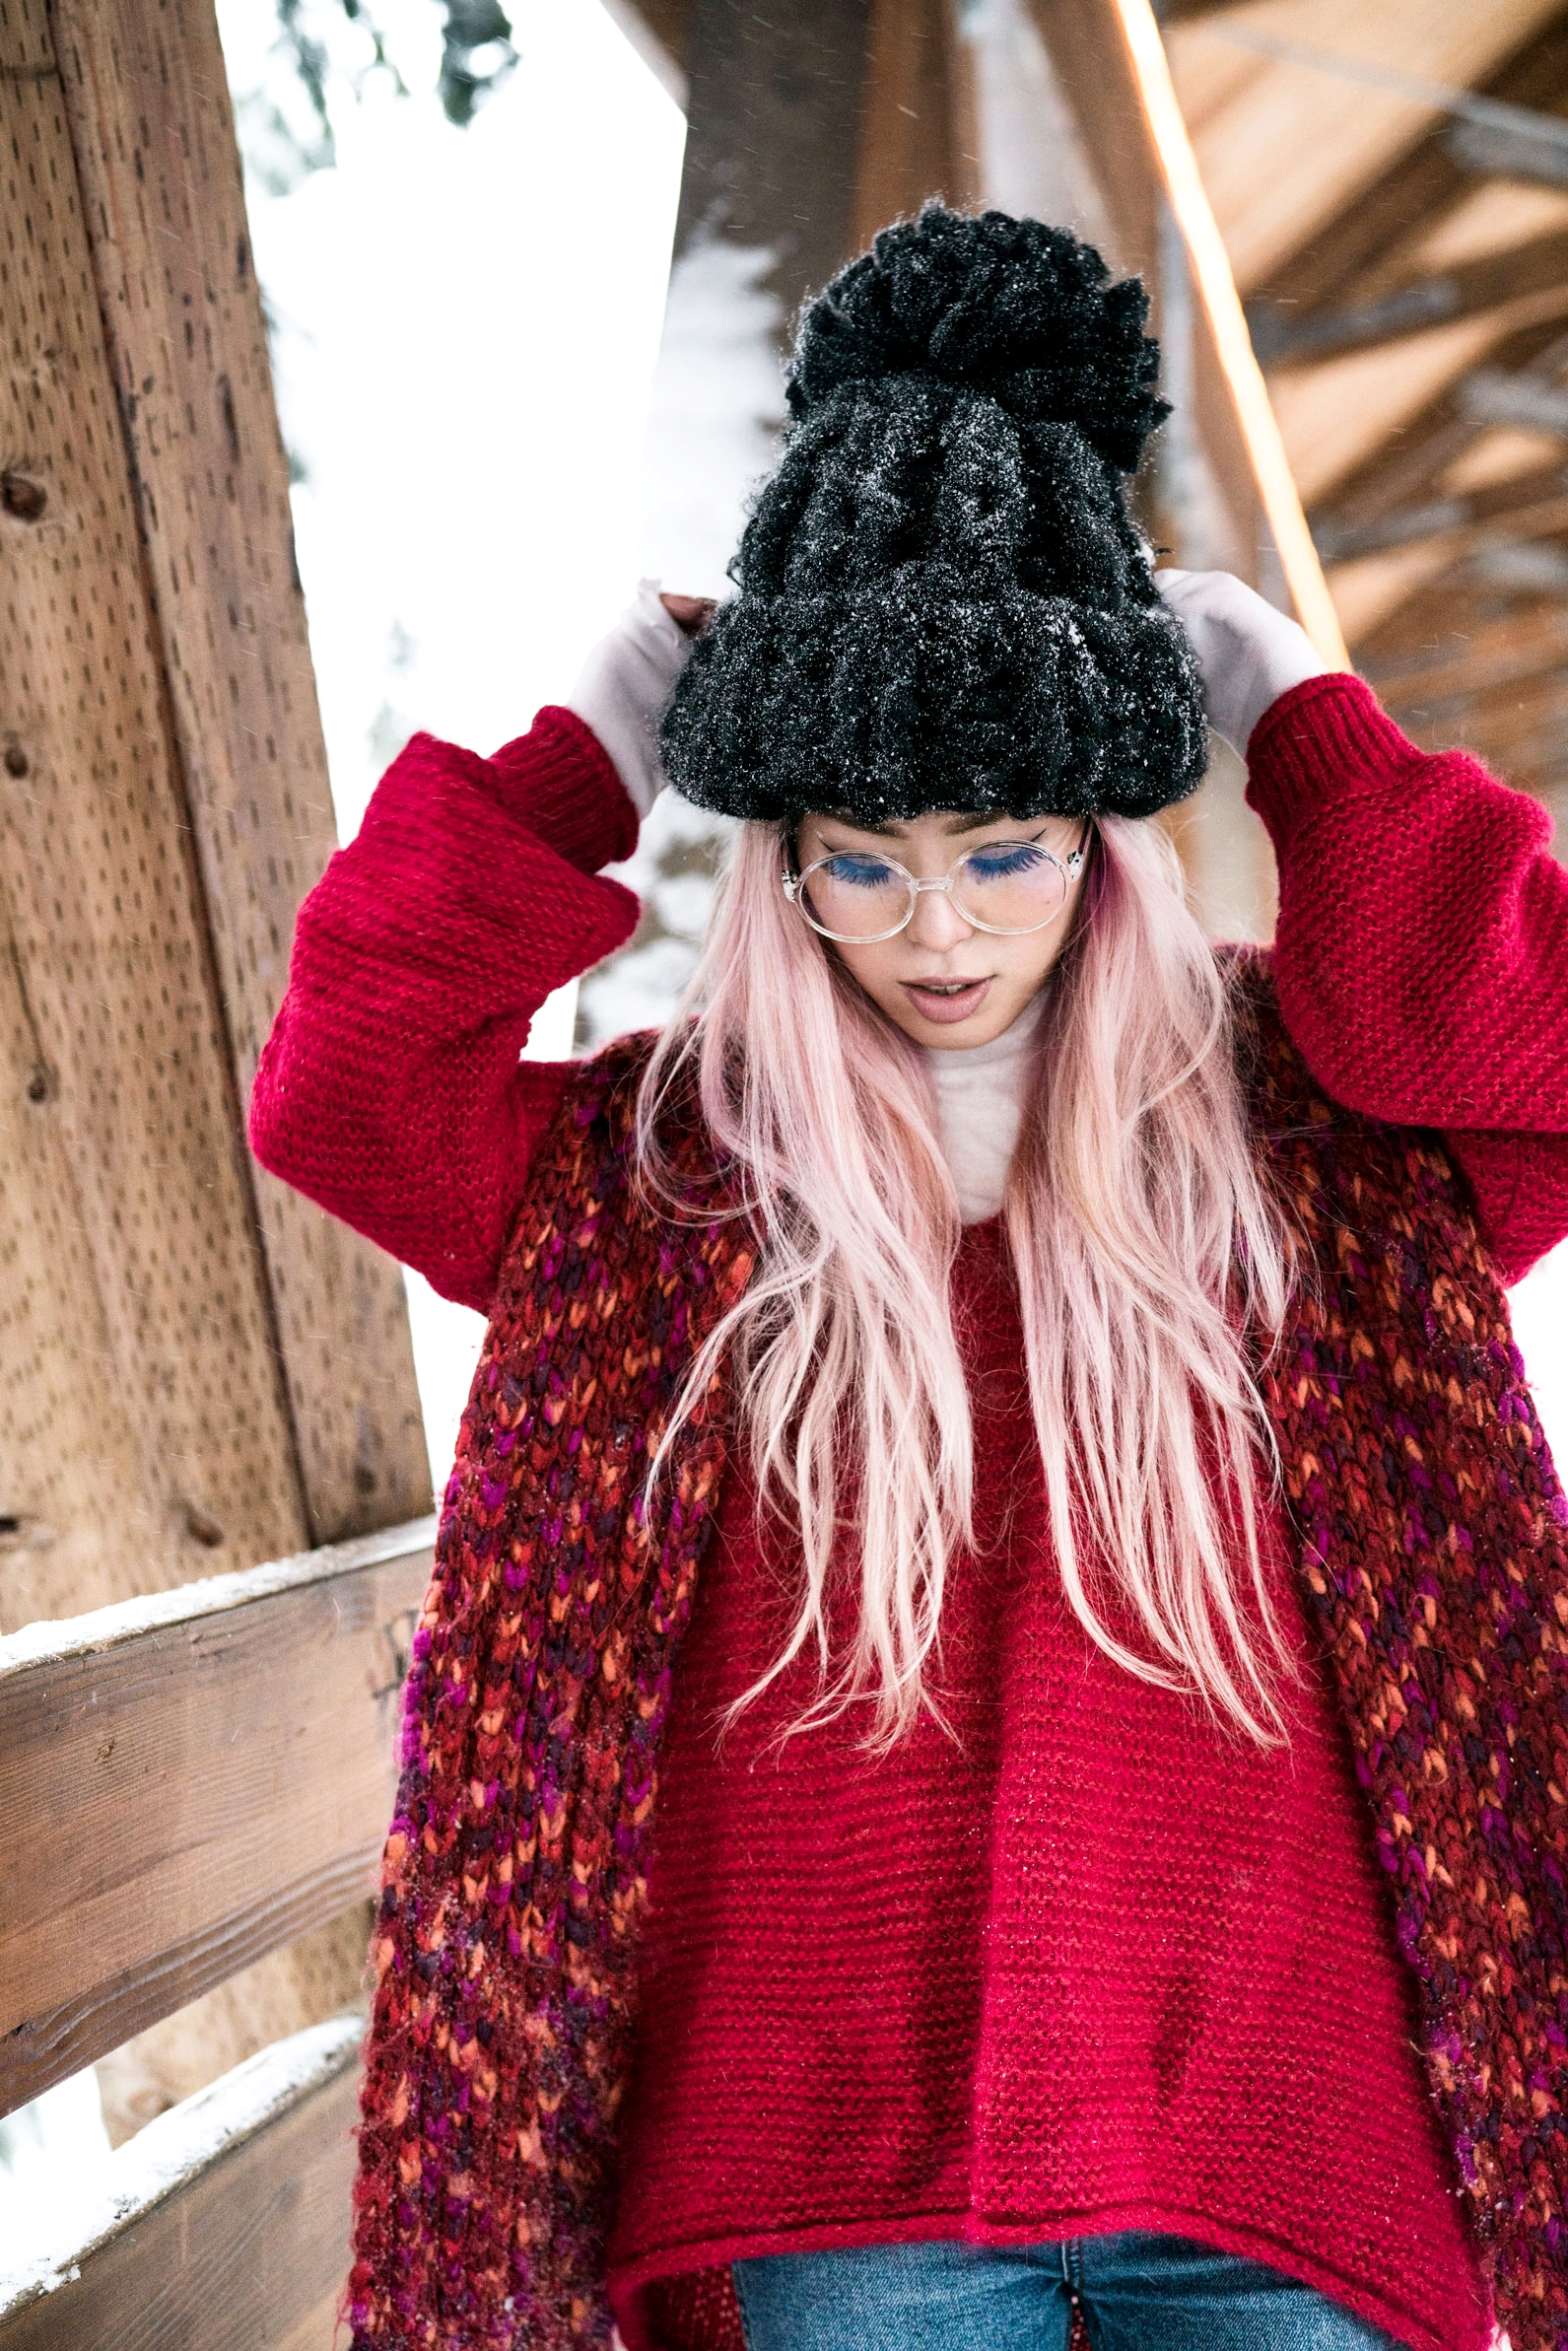 H&M Multi Colored Scarf, Transparent Clear Lens Glasses, Free people All Mine Sweater, Free People Modern Cuff Layering Top, Free People Ace High Rise Jeans, Free People Bobbi Chunky Pom Beanie, EGO Ankle Boots, Aika's Love Closet, Seattle Fashion Blogger from Japan, Pink Hair